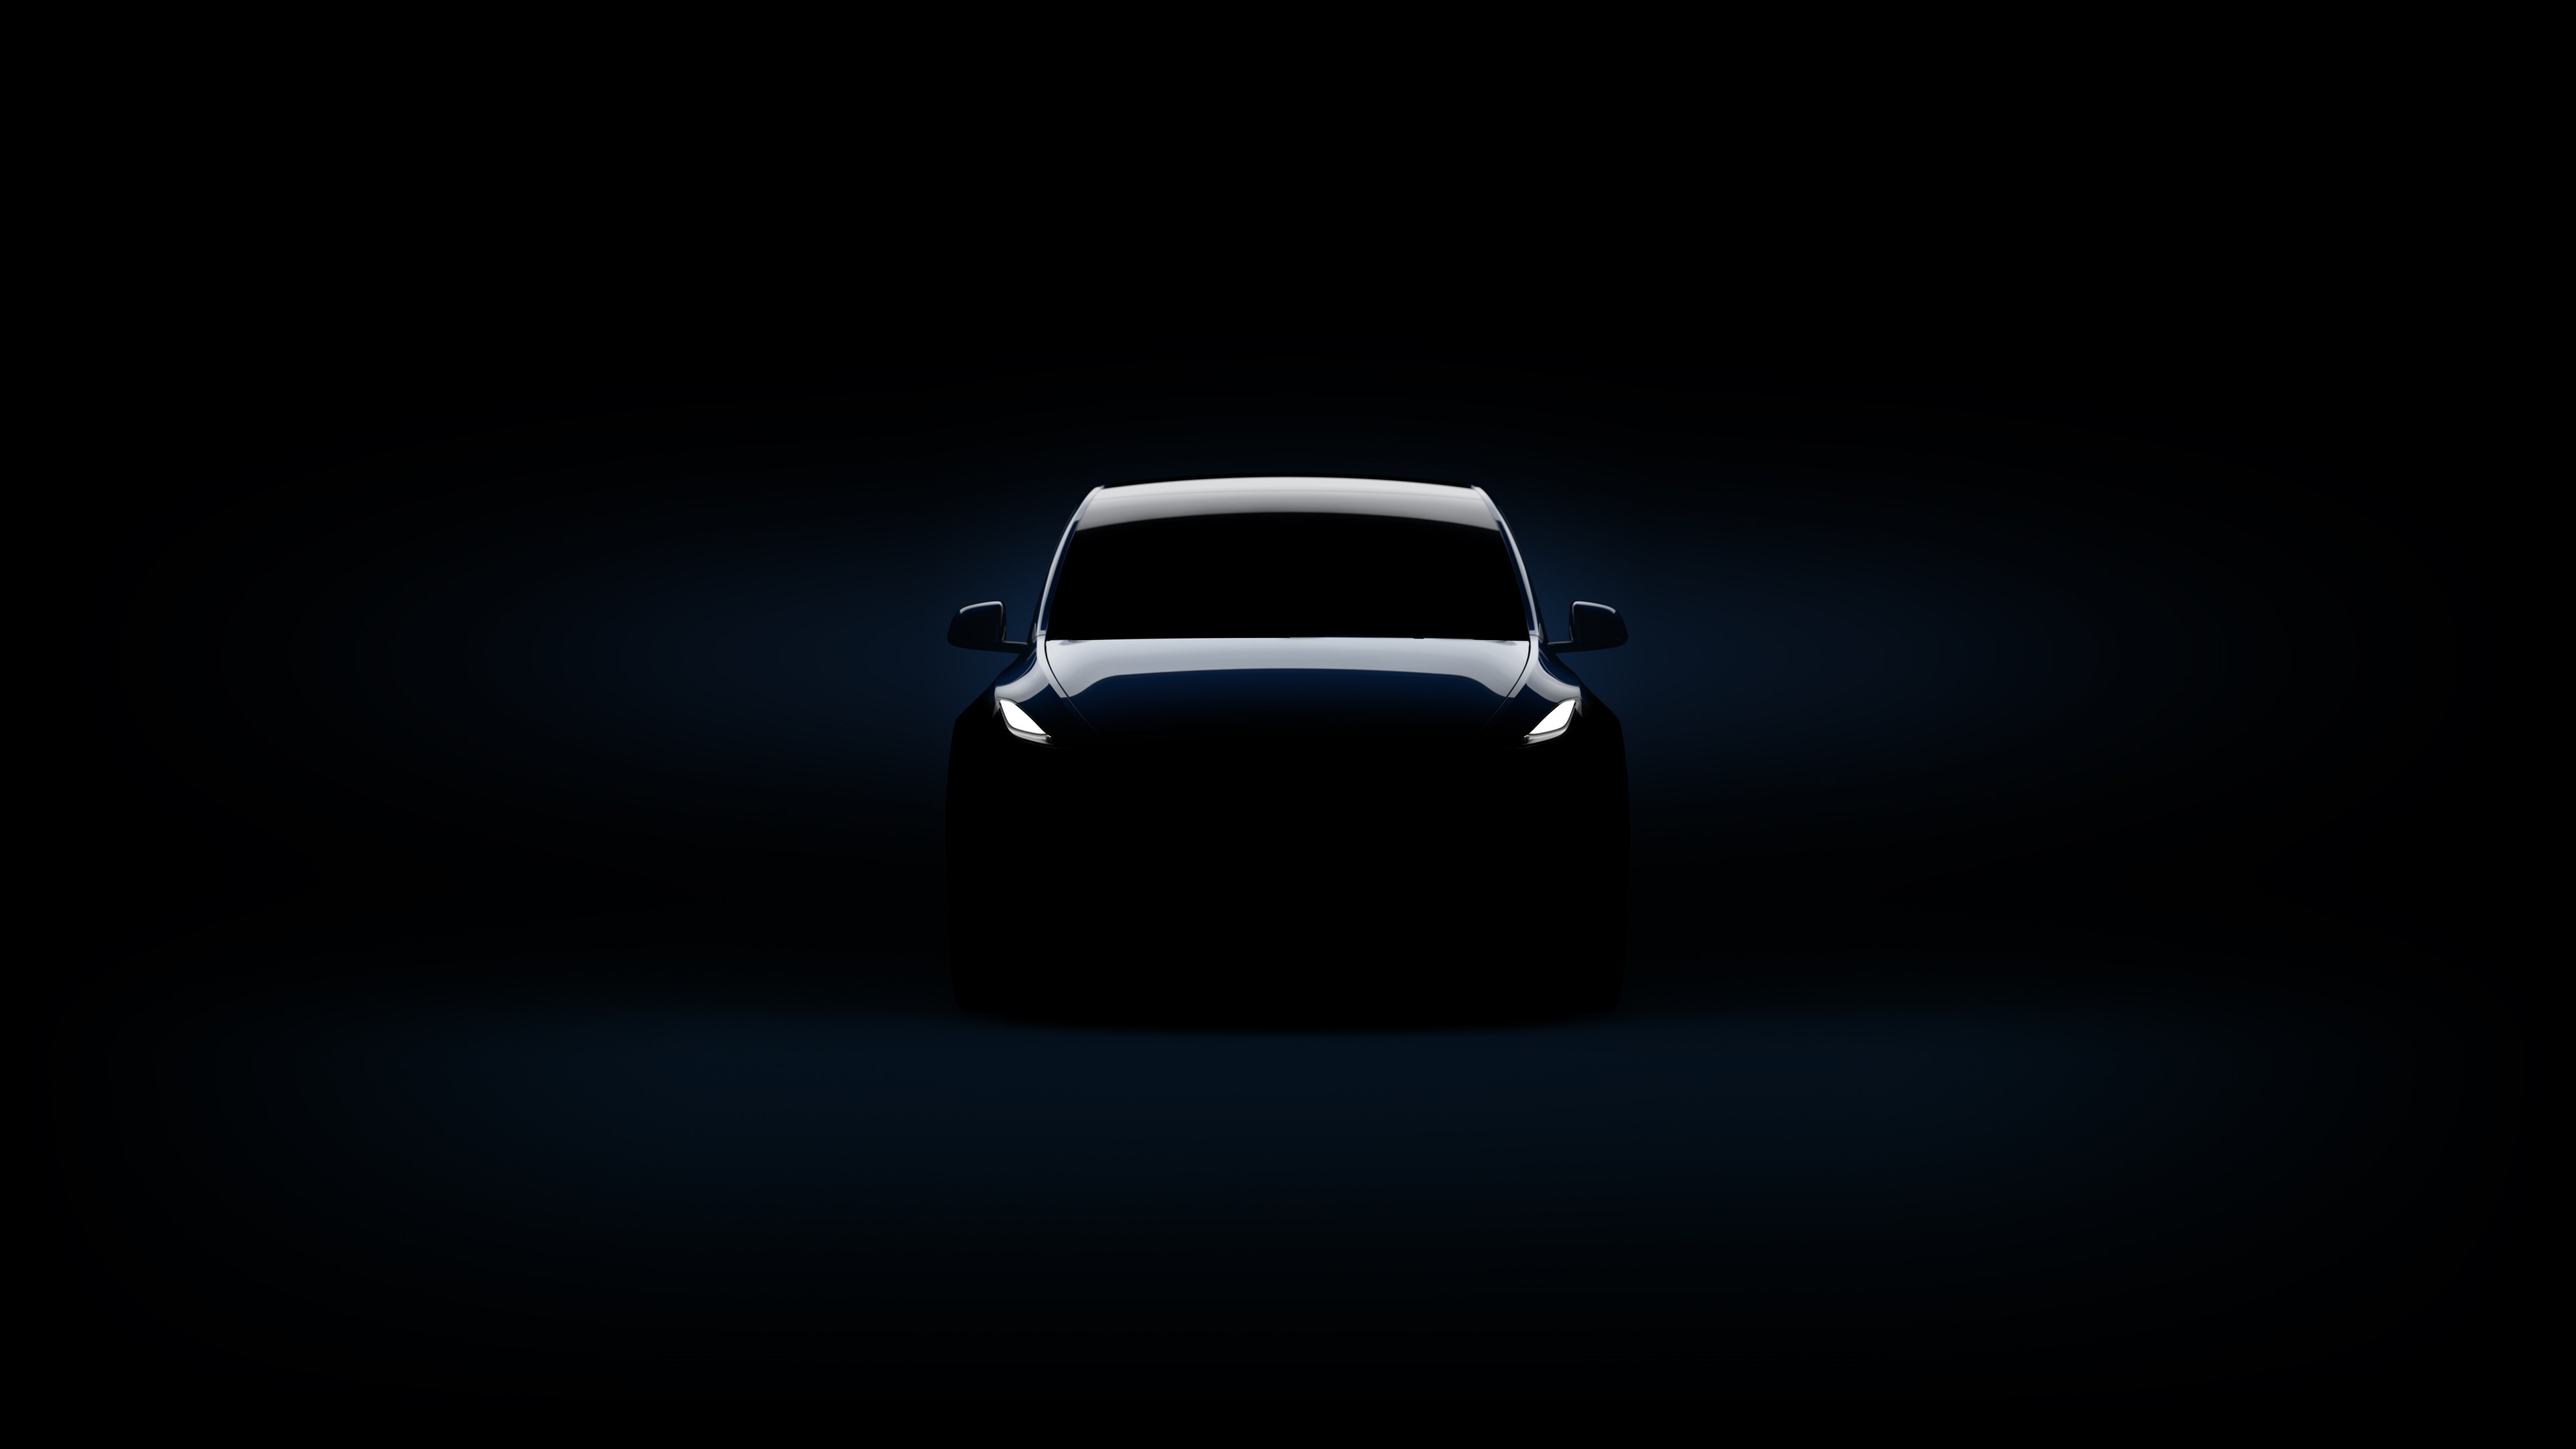 2019 tesla model y 4k 1553076271 - 2019 Tesla Model Y 4k - tesla wallpapers, tesla model y wallpapers, hd-wallpapers, cars wallpapers, 4k-wallpapers, 2019 cars wallpapers